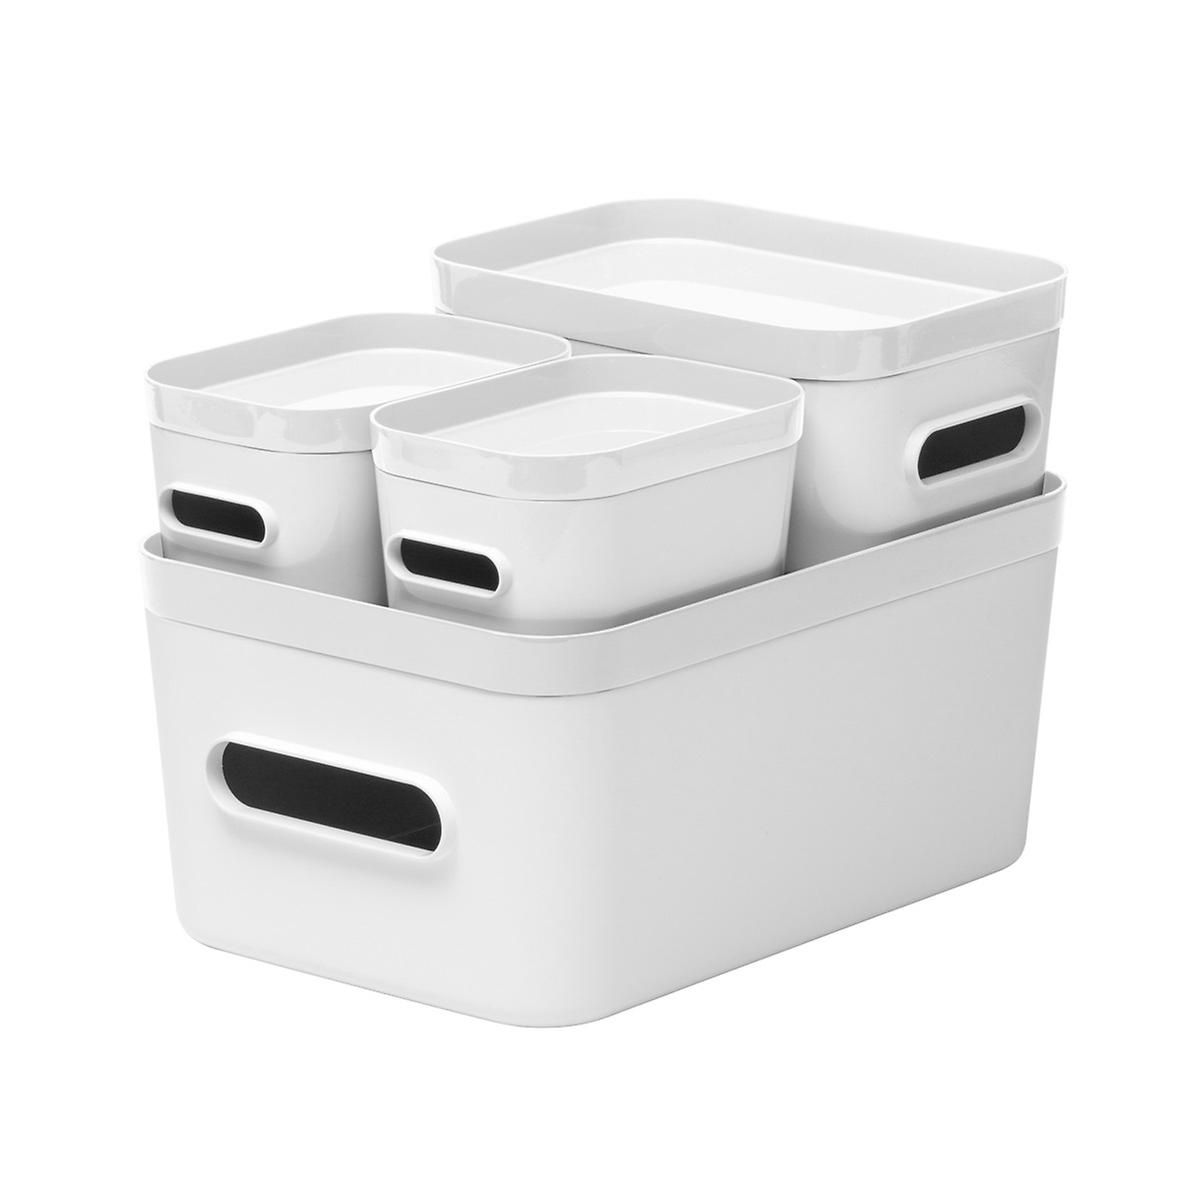 White Compact Plastic Bins 4 Pack With White Lids Plastic Bins